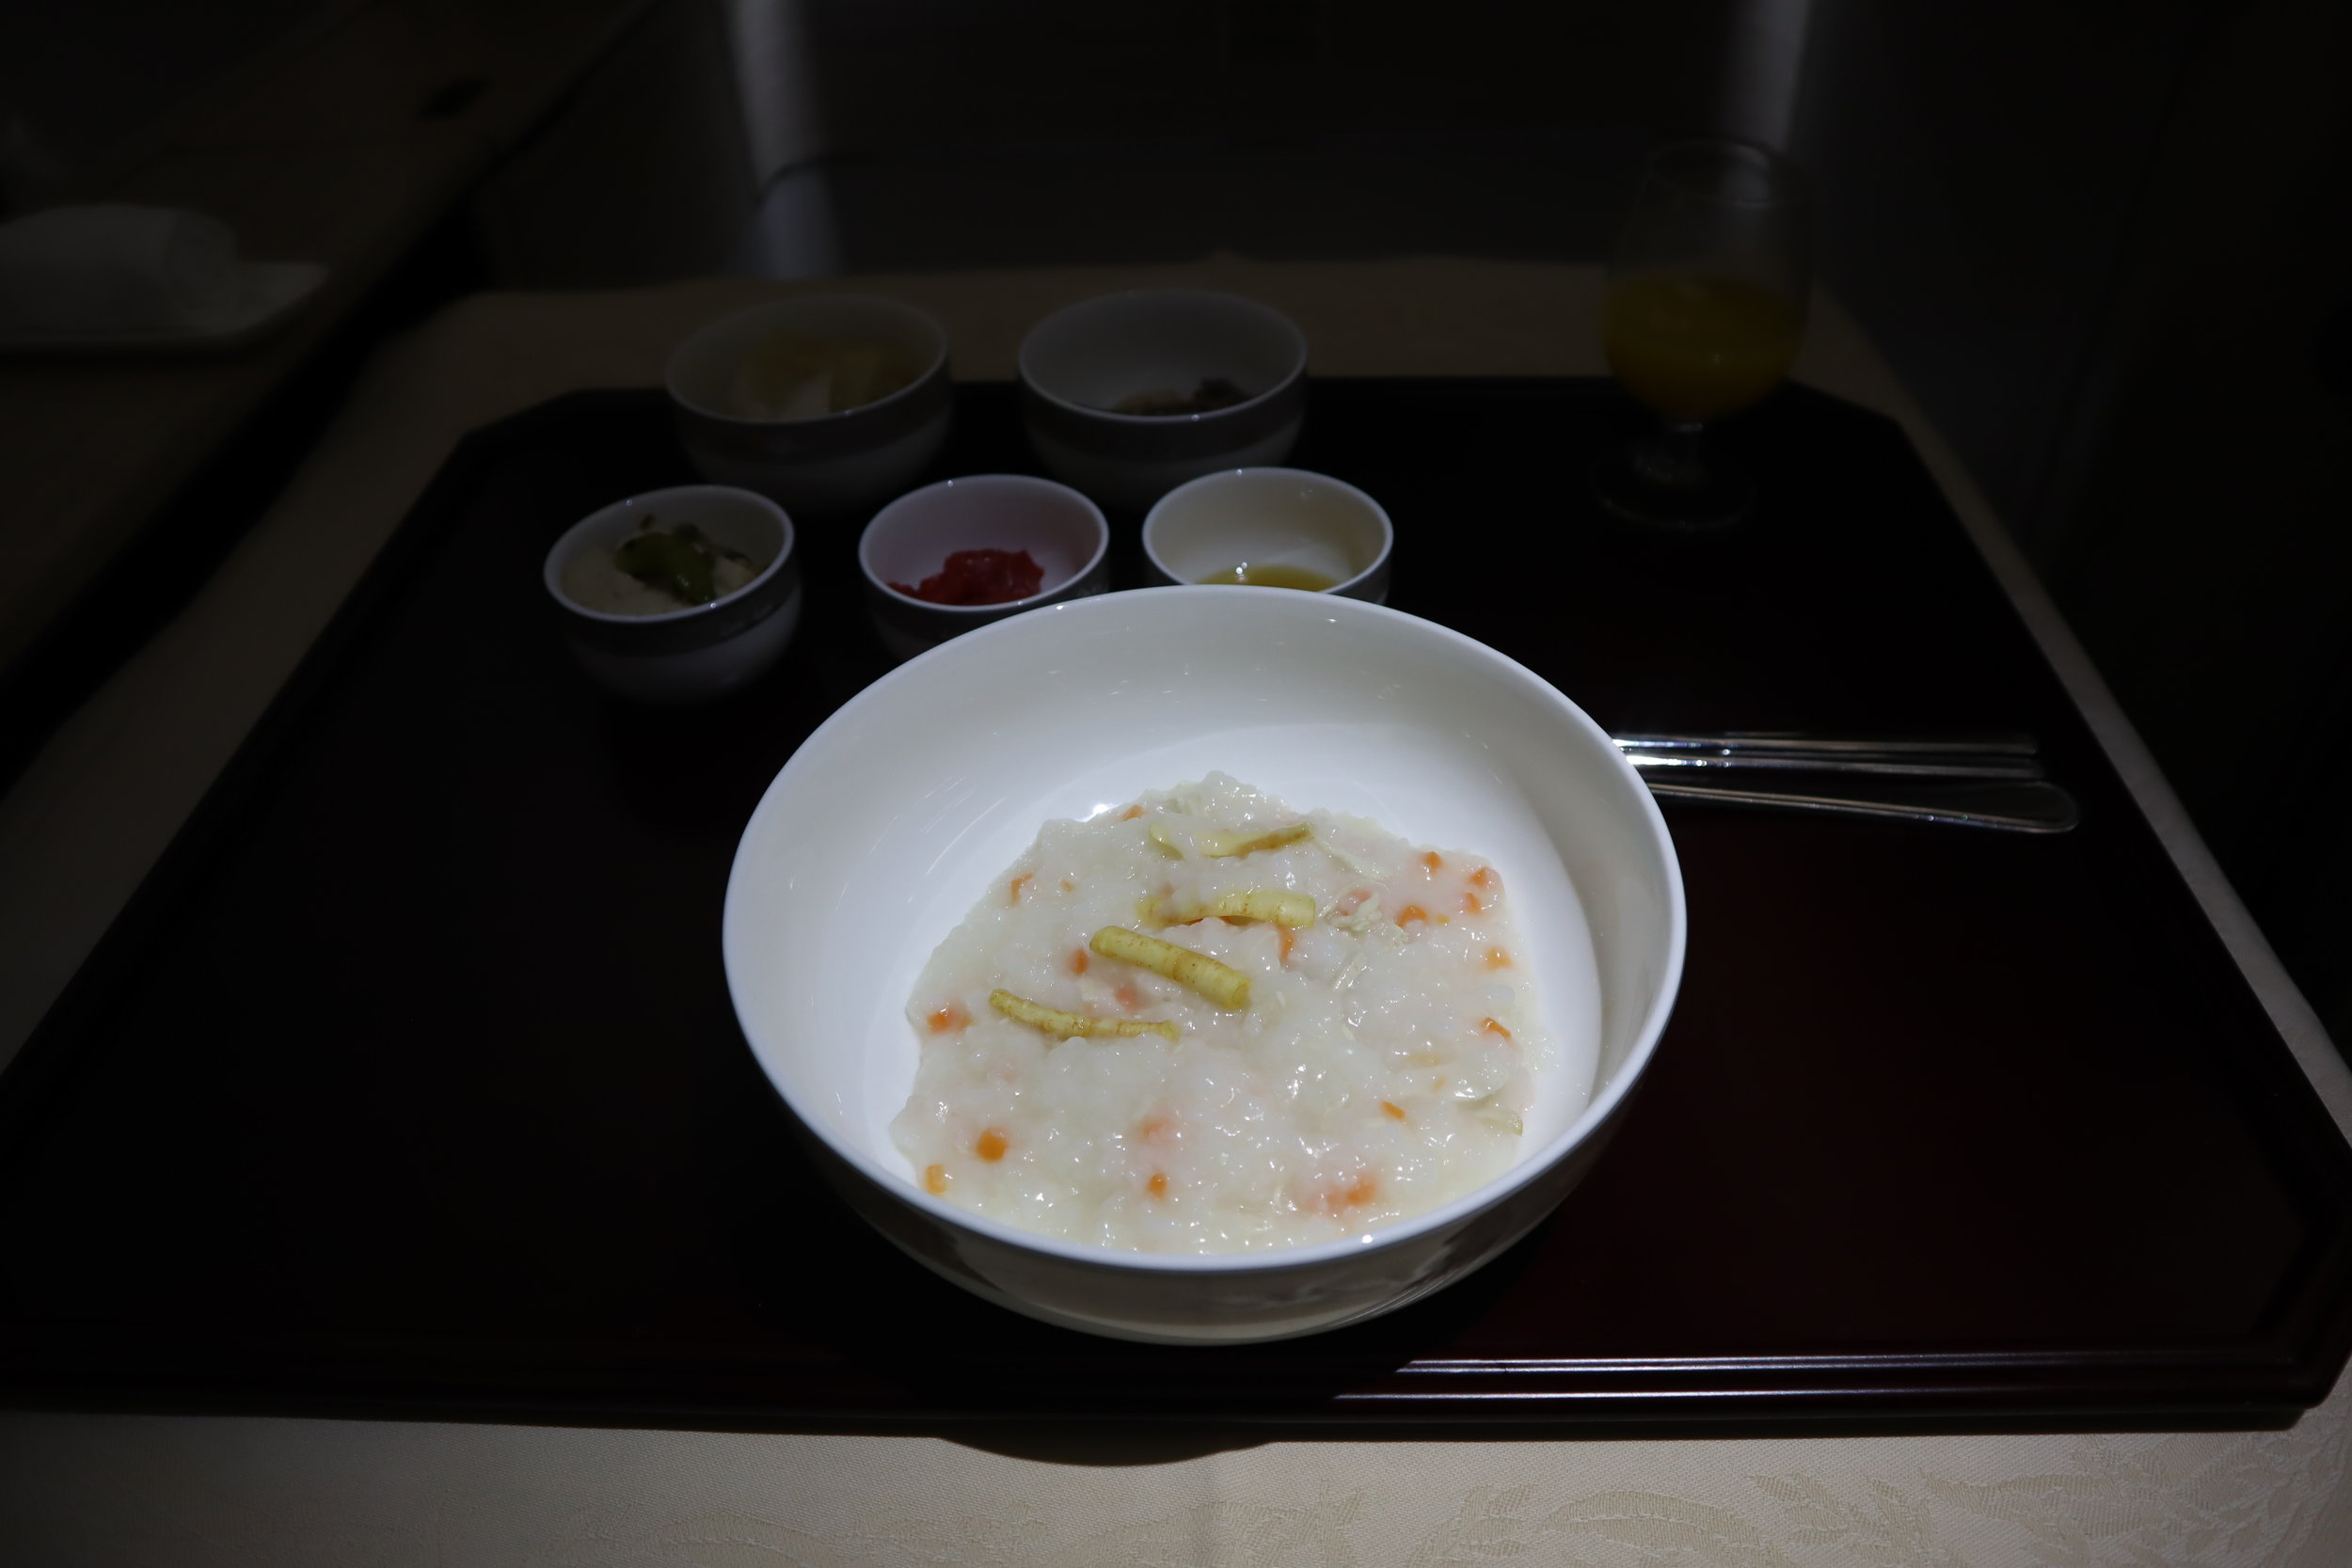 Asiana Airlines First Class – Ginseng porridge